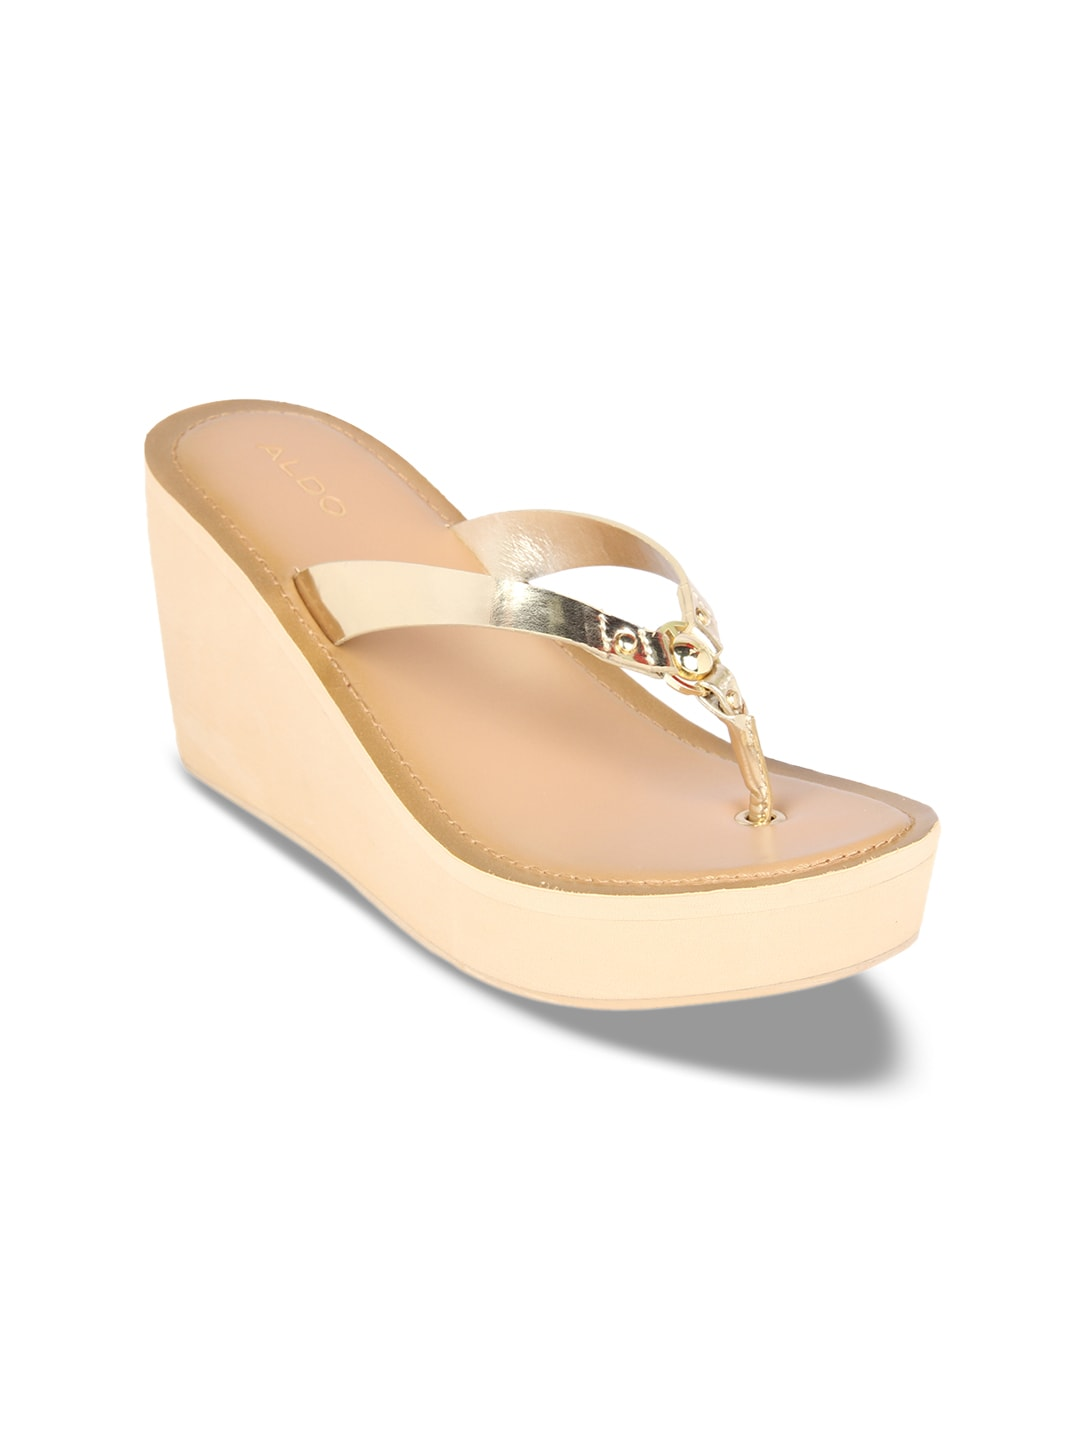 7fe2a6b359f ALDO Shoes - Buy Shoes from ALDO Online Store in India